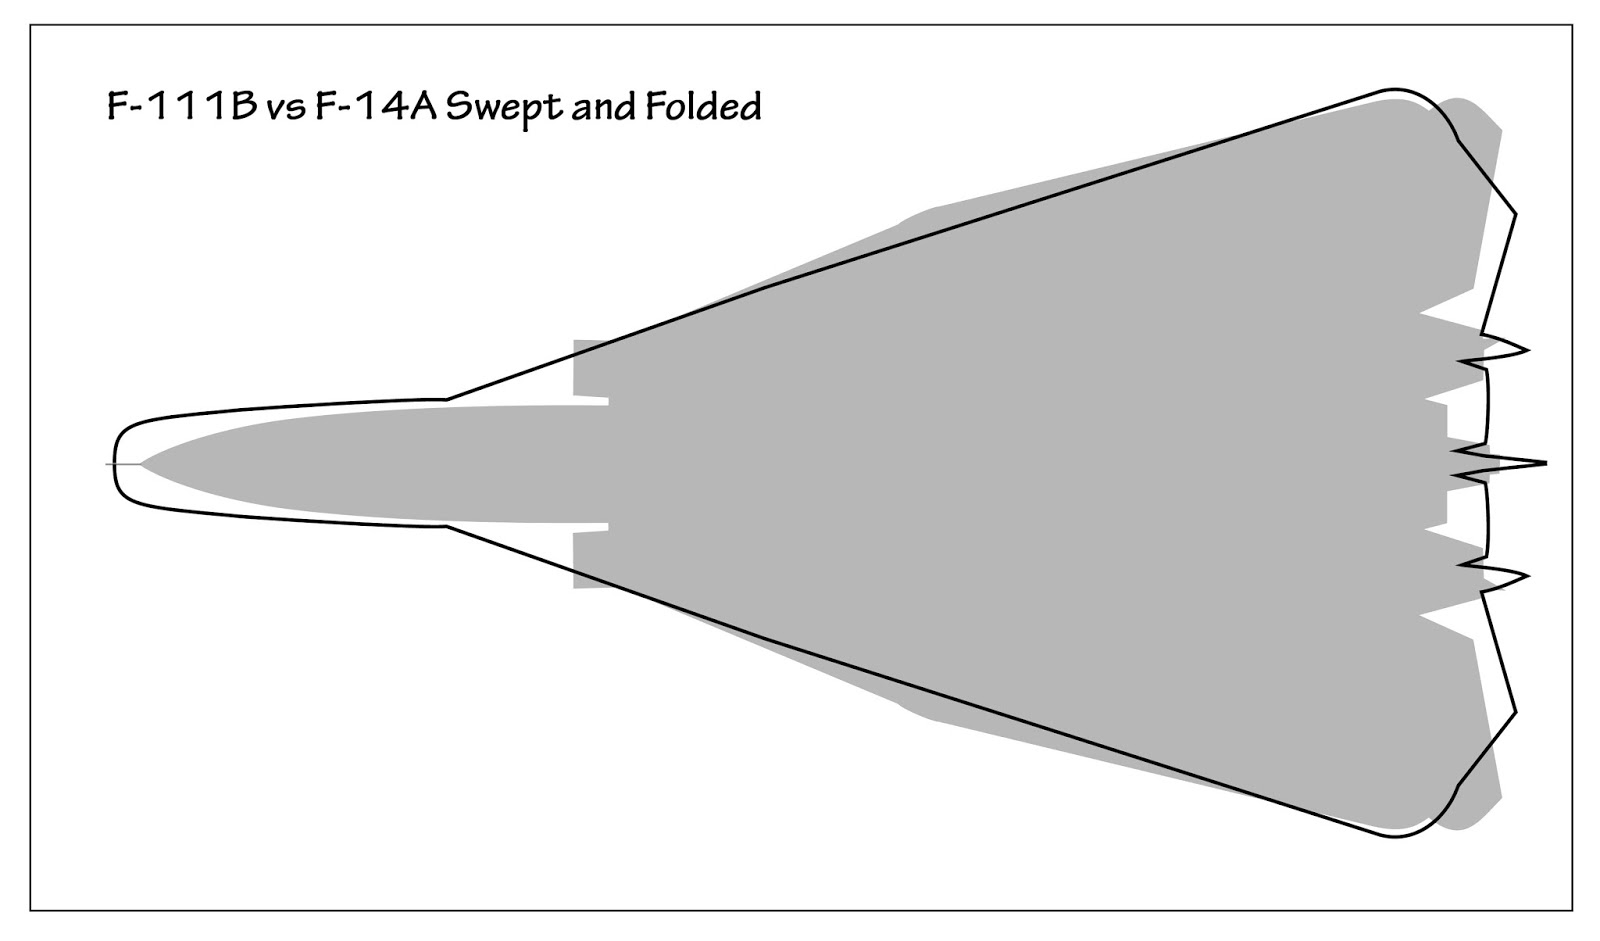 medium resolution of  full disclosure the f 111b s nose is folded upward as it was designed to be for parking on a carrier deck